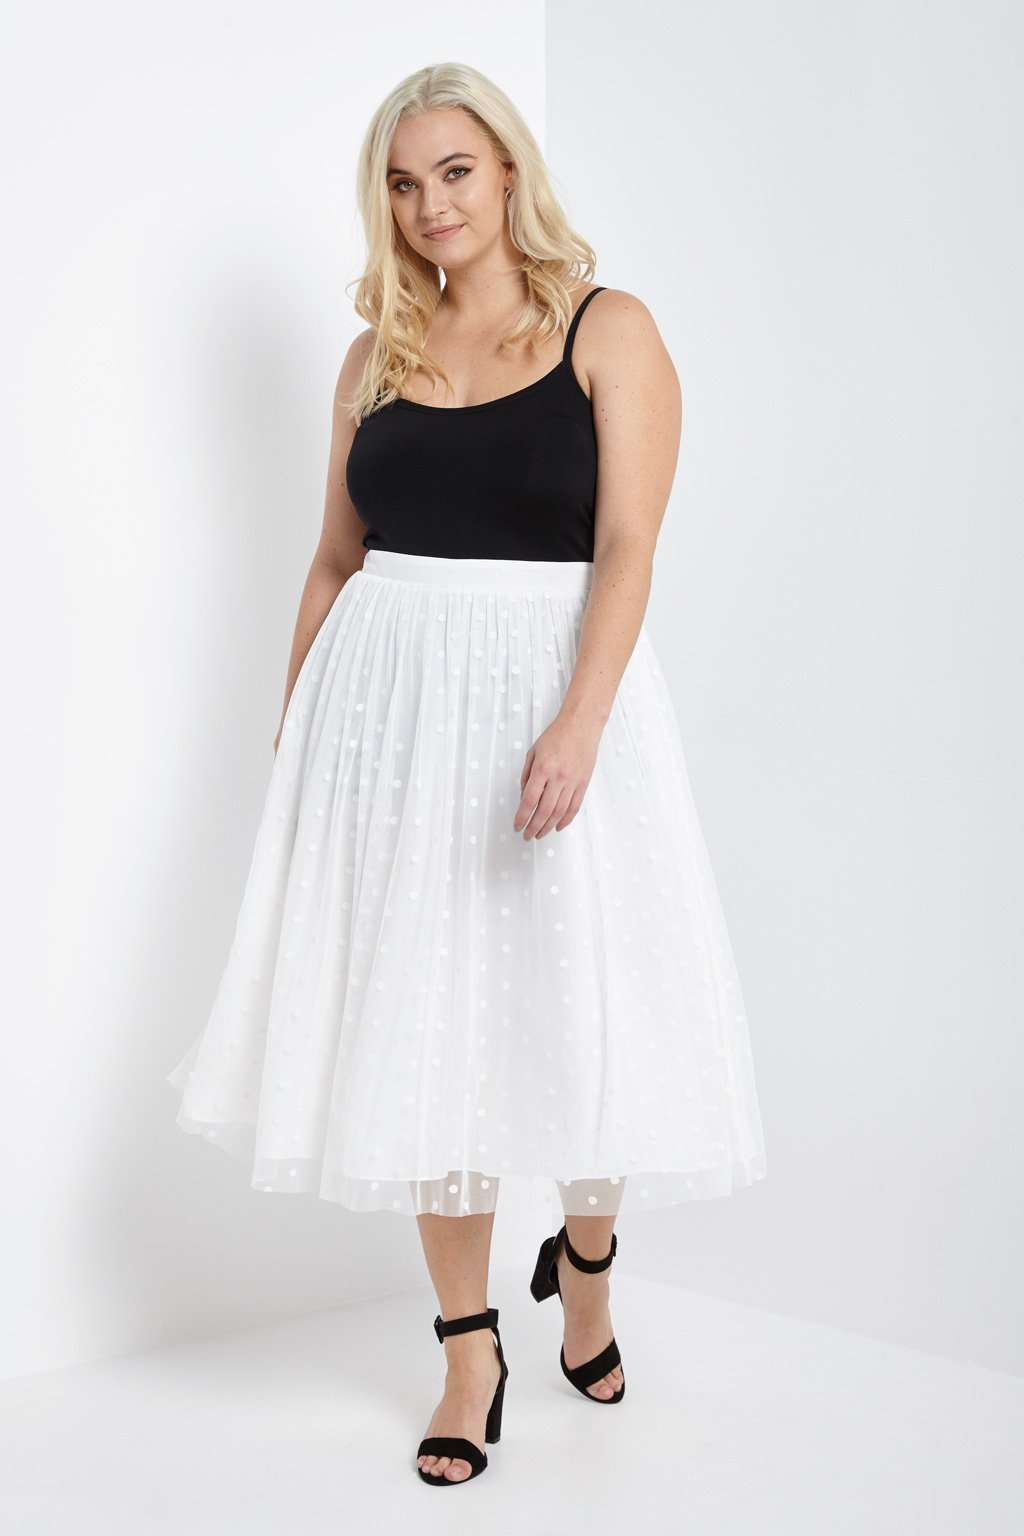 Poshsquare Plus Polkadot Tulle Midi Skirt Plus Size